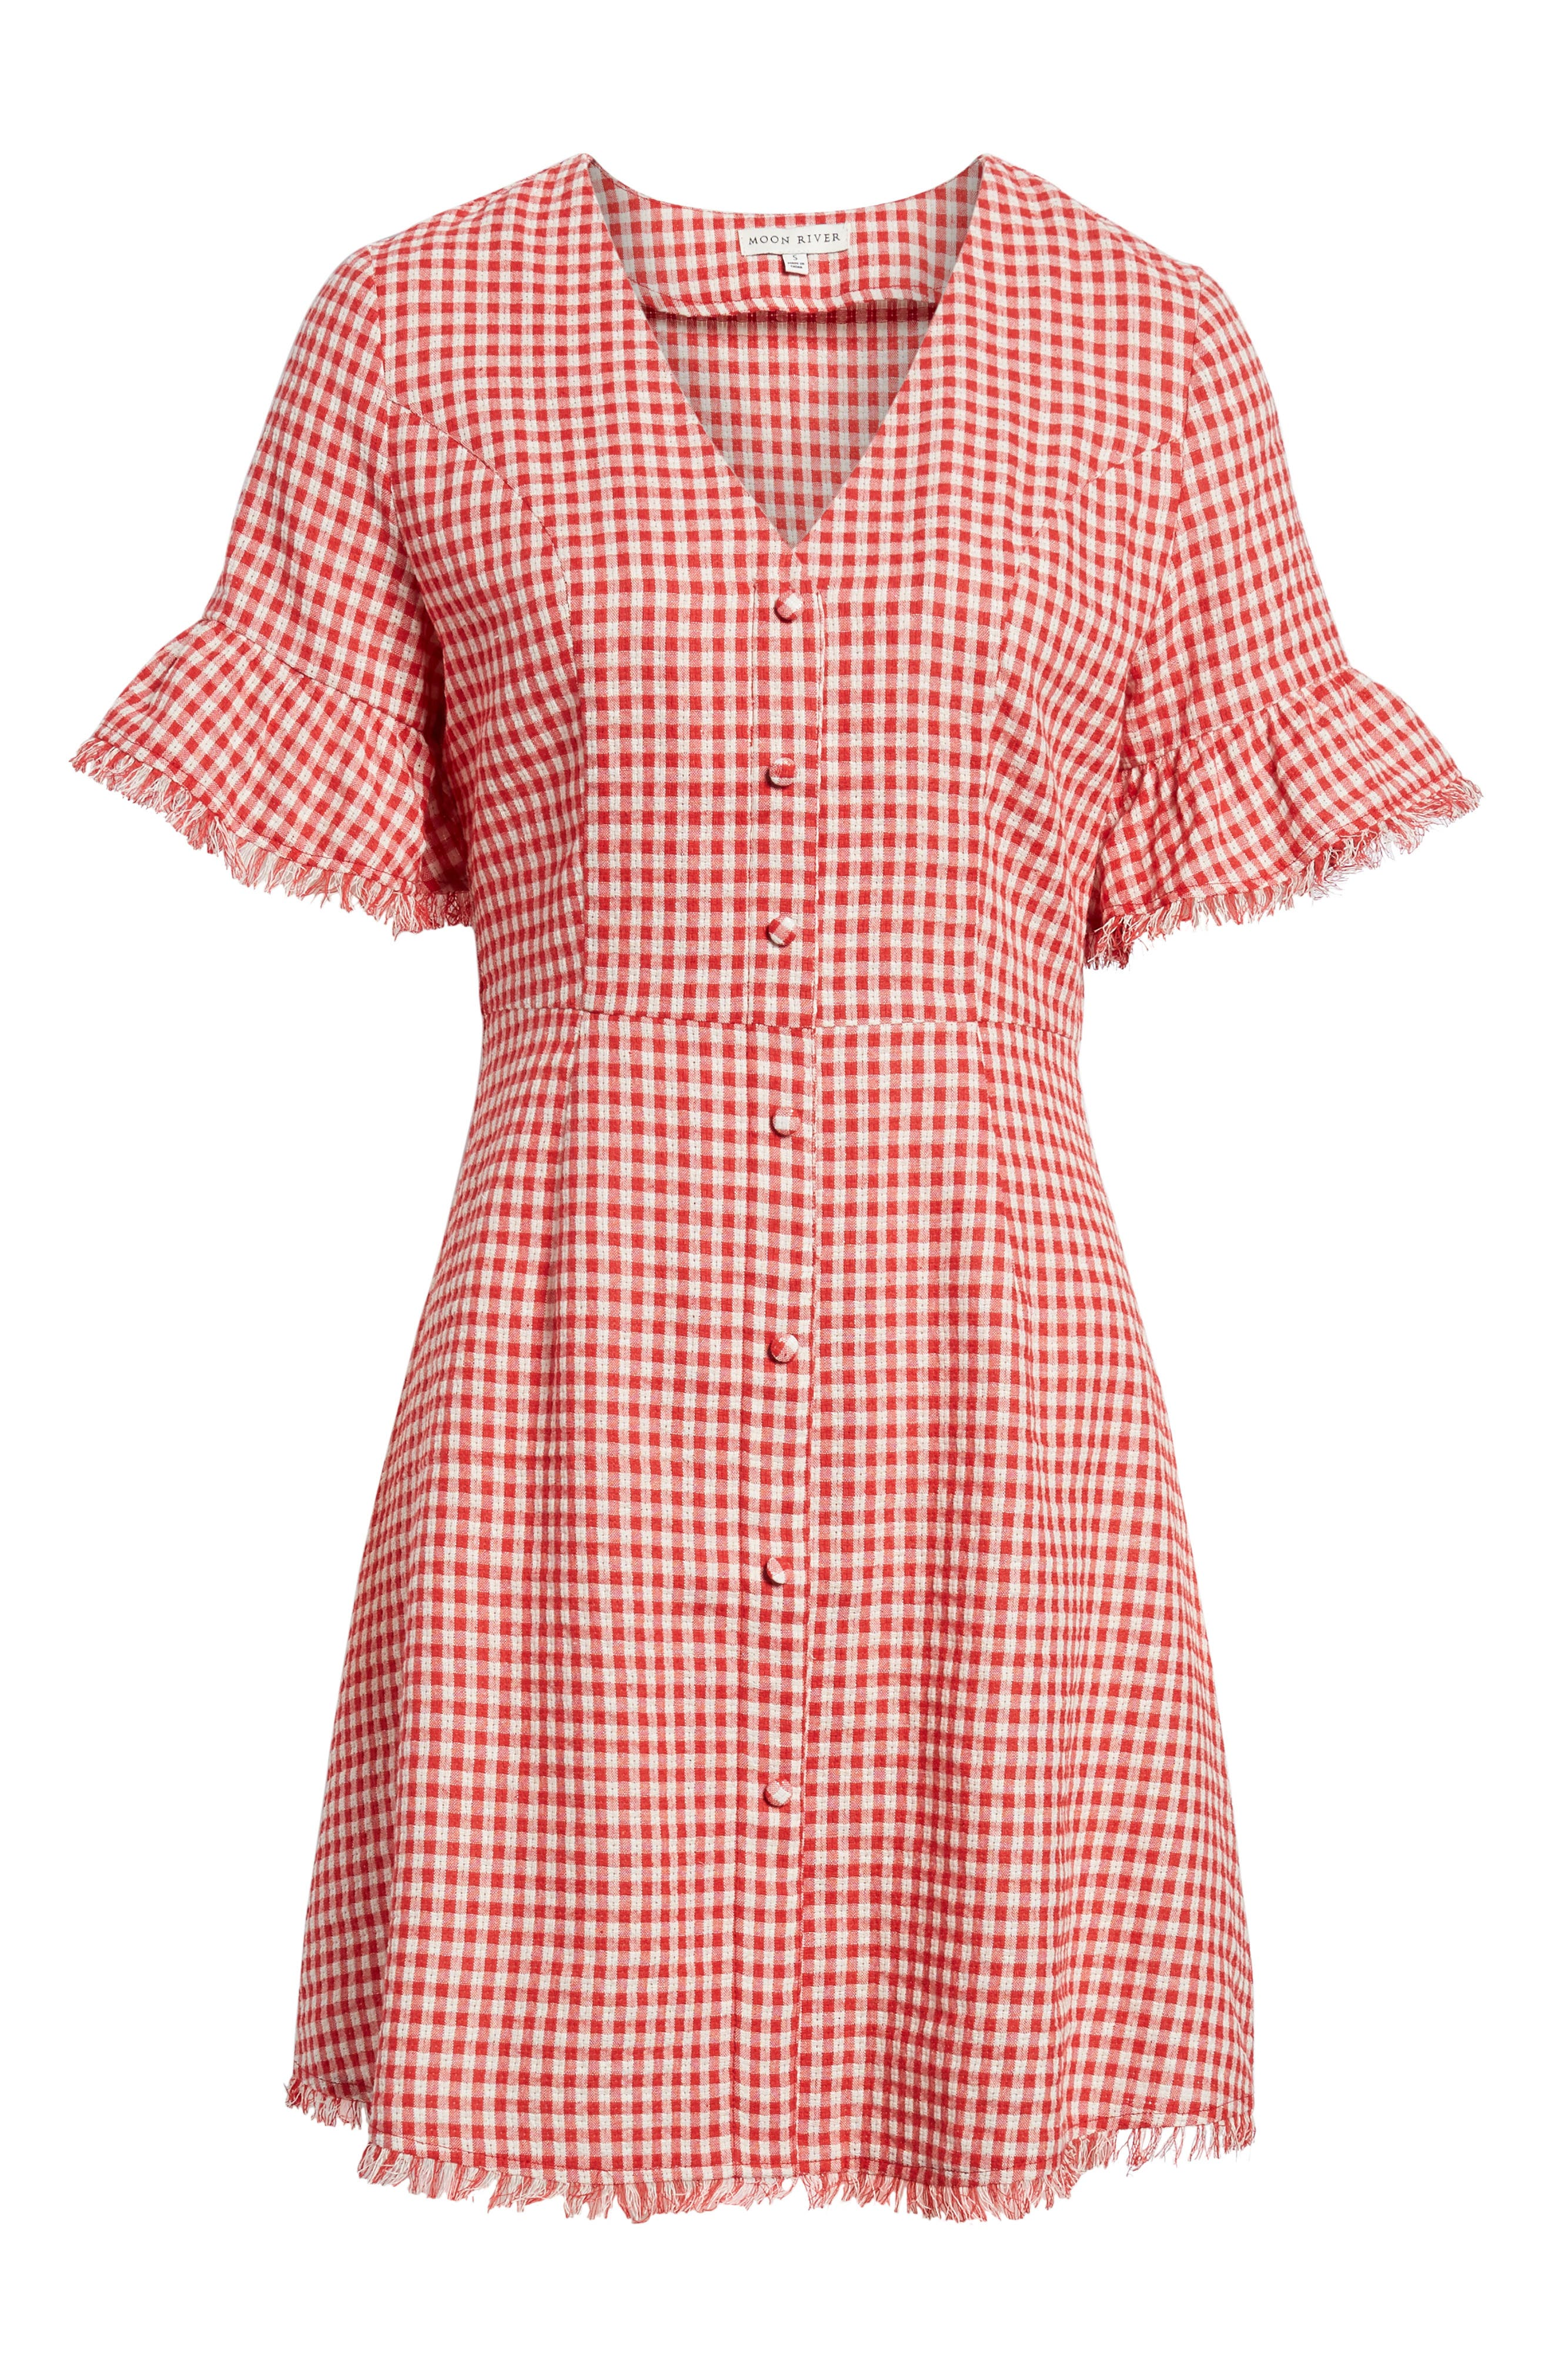 Gingham Ruffle Sleeve Dress,                             Alternate thumbnail 6, color,                             600